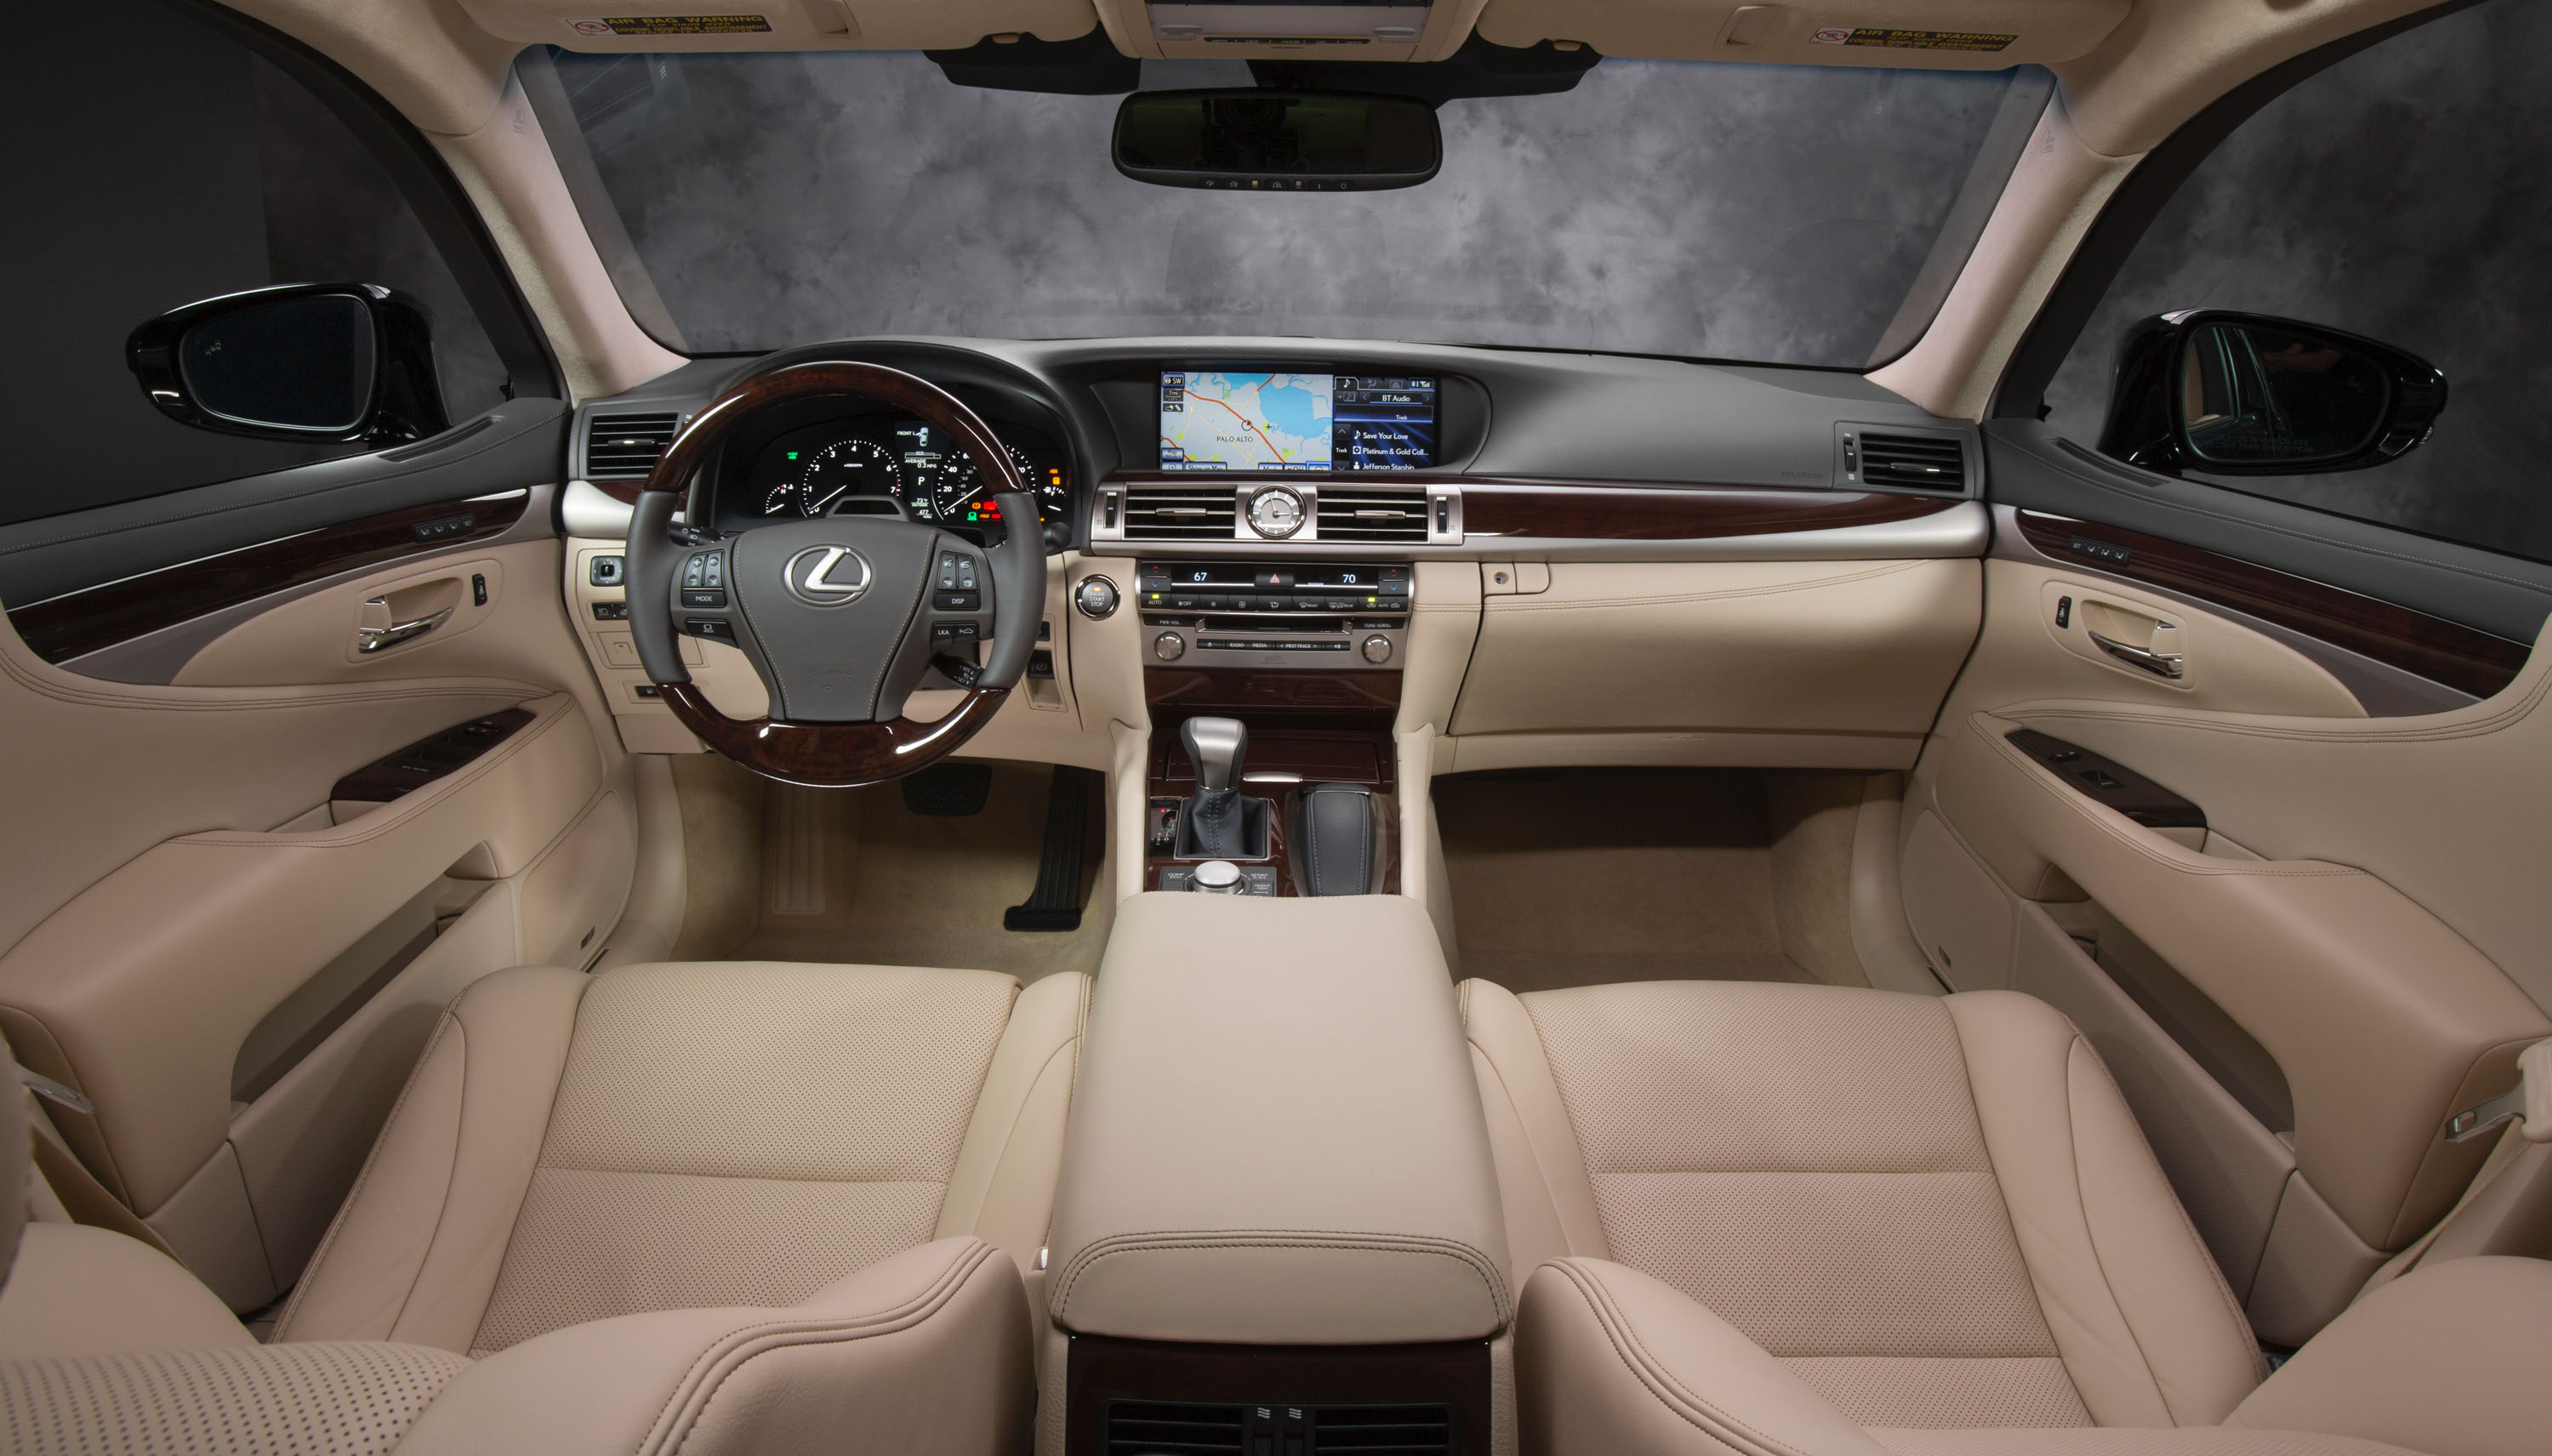 Lexus LS with Electronically Controlled Lighting System, AIS and Climate Concierge: